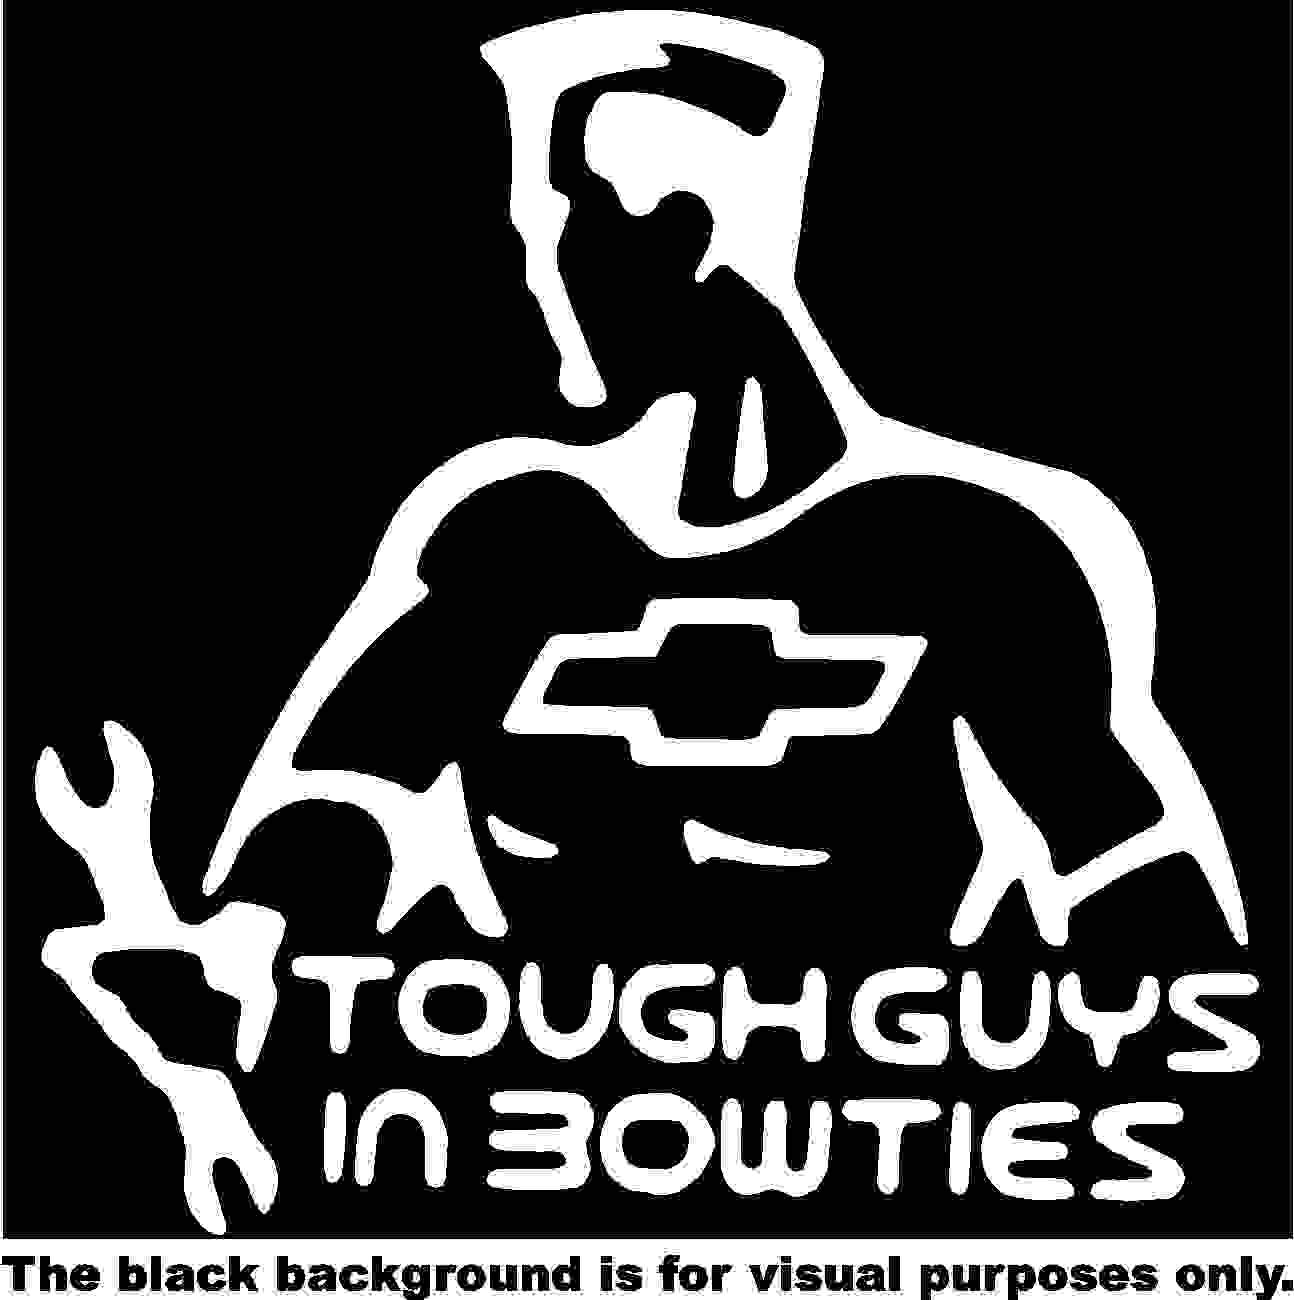 Tough Guys in Bow Ties Decal Sticker Vinyl Car Window Tumblers Wall Laptops Cellphones Phones Tablets Ipads Helmets Motorcycles Computer Towers V and T Gifts